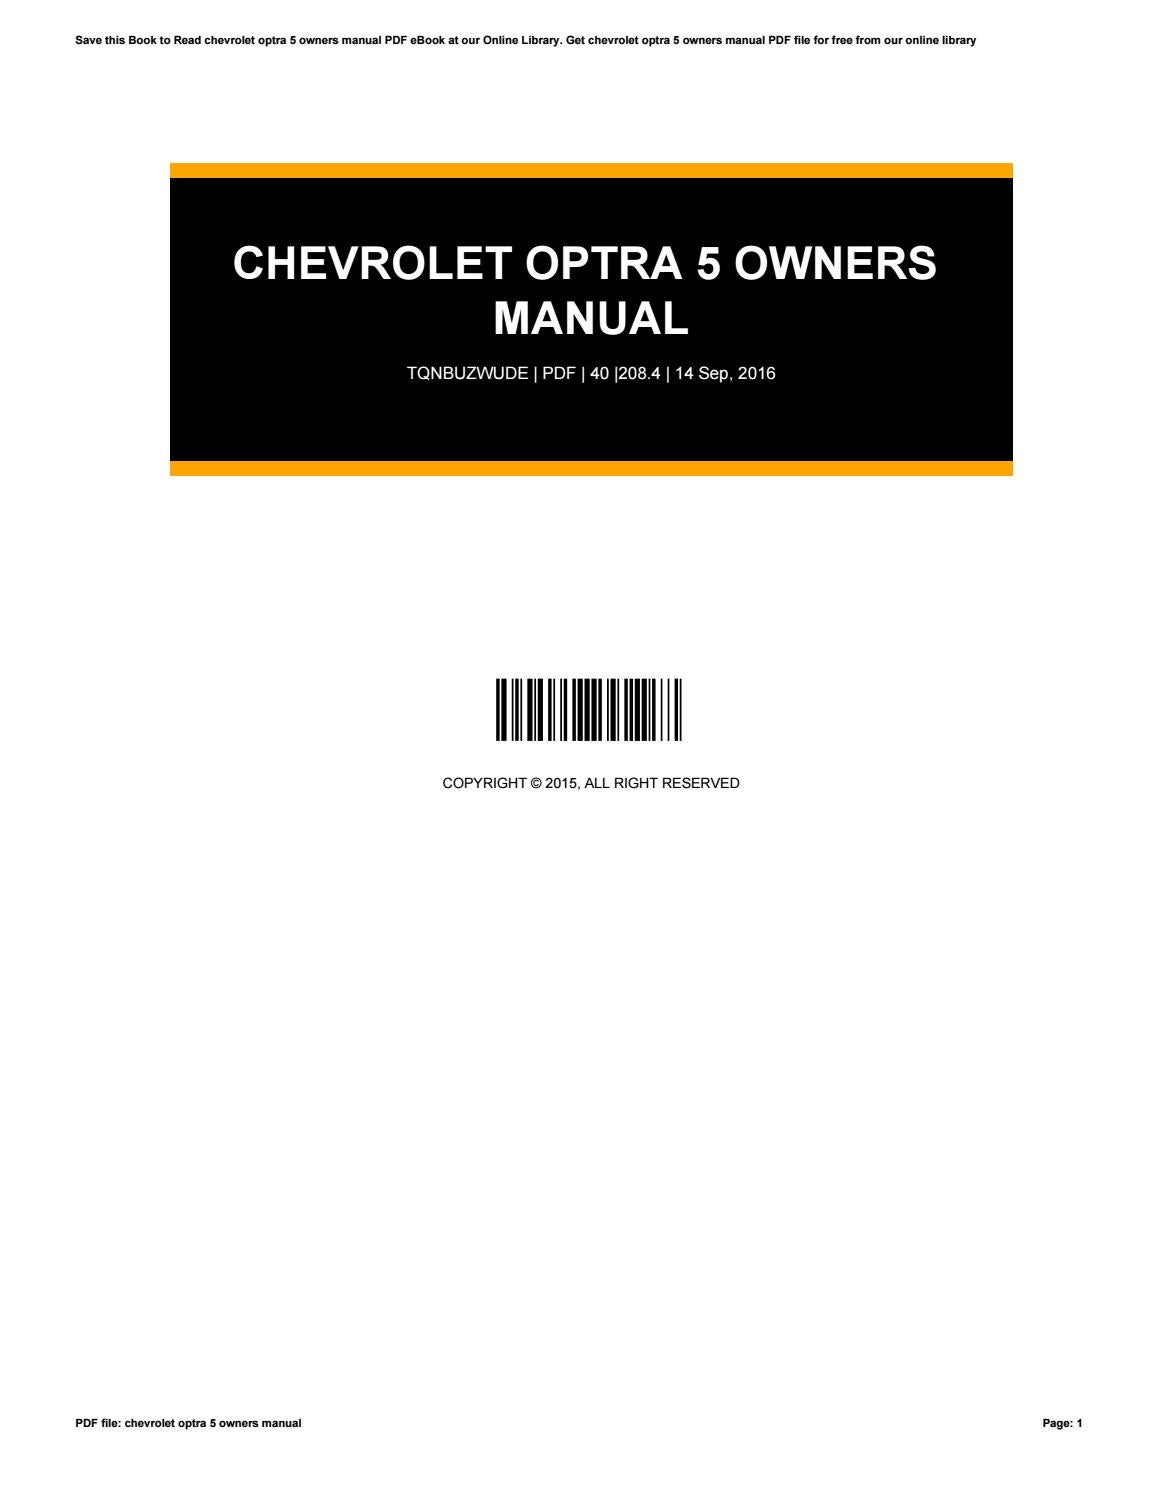 Chevrolet Optra 5 Owners Manual By Psles97